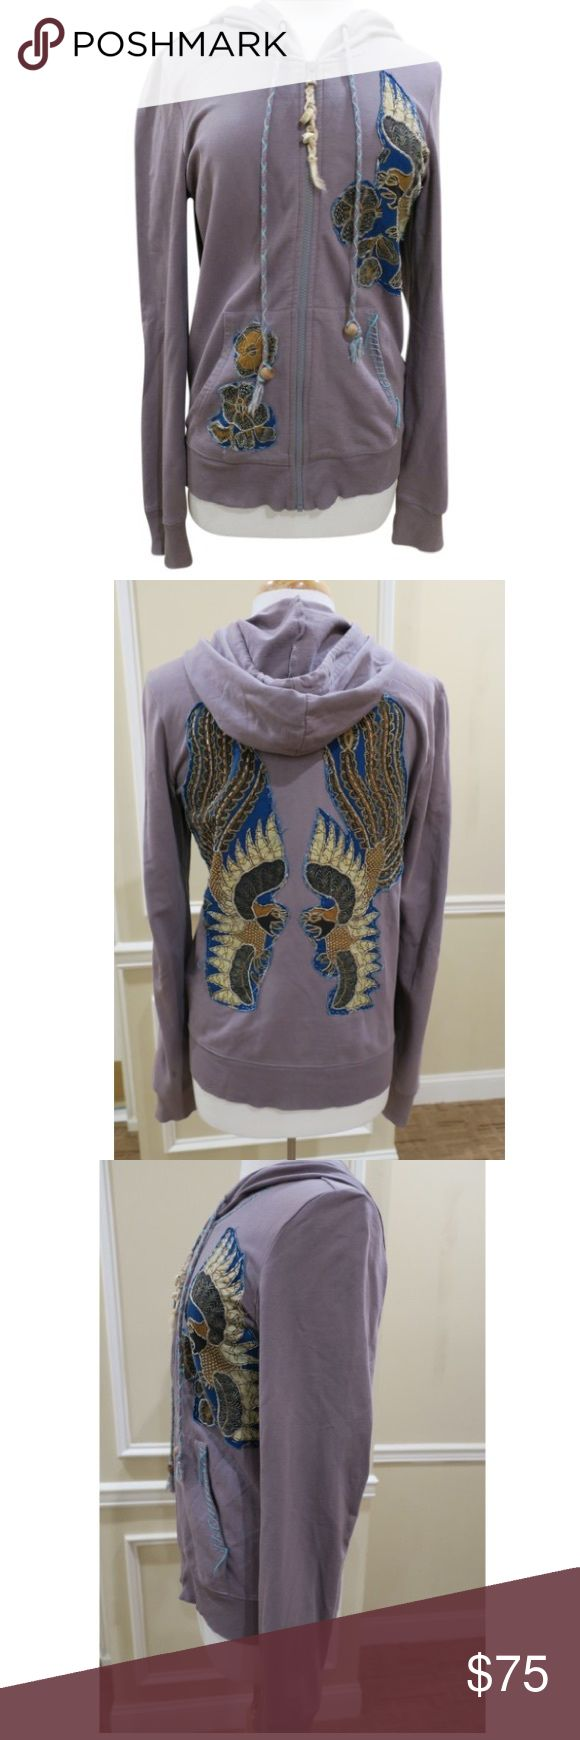 Free People Beaded Embellished Eagle Sweatshirt Beautiful embellished hoodie with eagle and flower designs. Very comfortable, but the beading and patches give it a much more vibrant look than your average sweatshirt. It looks great over a t-shirt and jeans but also cute over dresses. The color is grey, leaning towards the purple family. Boho look. The shape is great, somewhat form fitting, not too boxy. The zipper pull has shell details as pictured. Size medium. 100% cotton. Free People Tops…